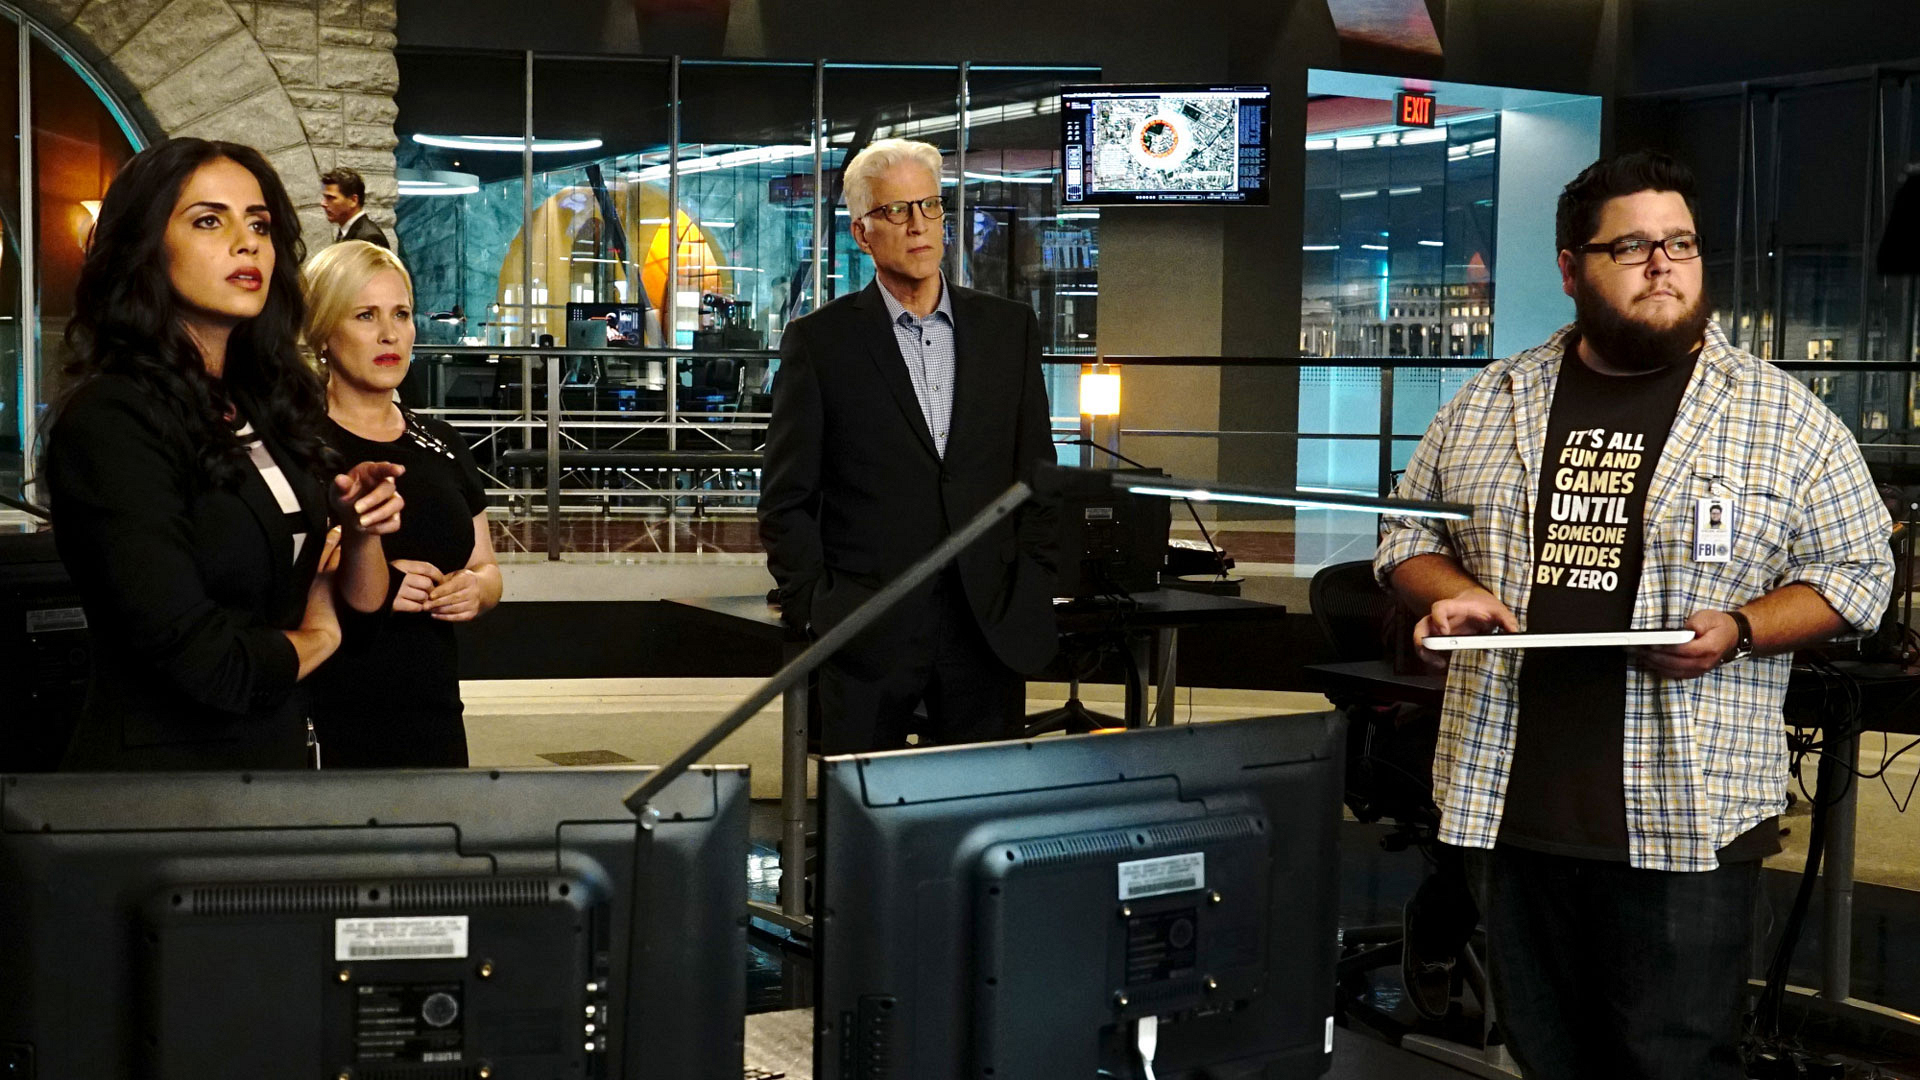 Patricia Arquette as Dr. Avery Ryan, Ted Danson as D.B. Russell, and Charley Koontz as Daniel Grumitz